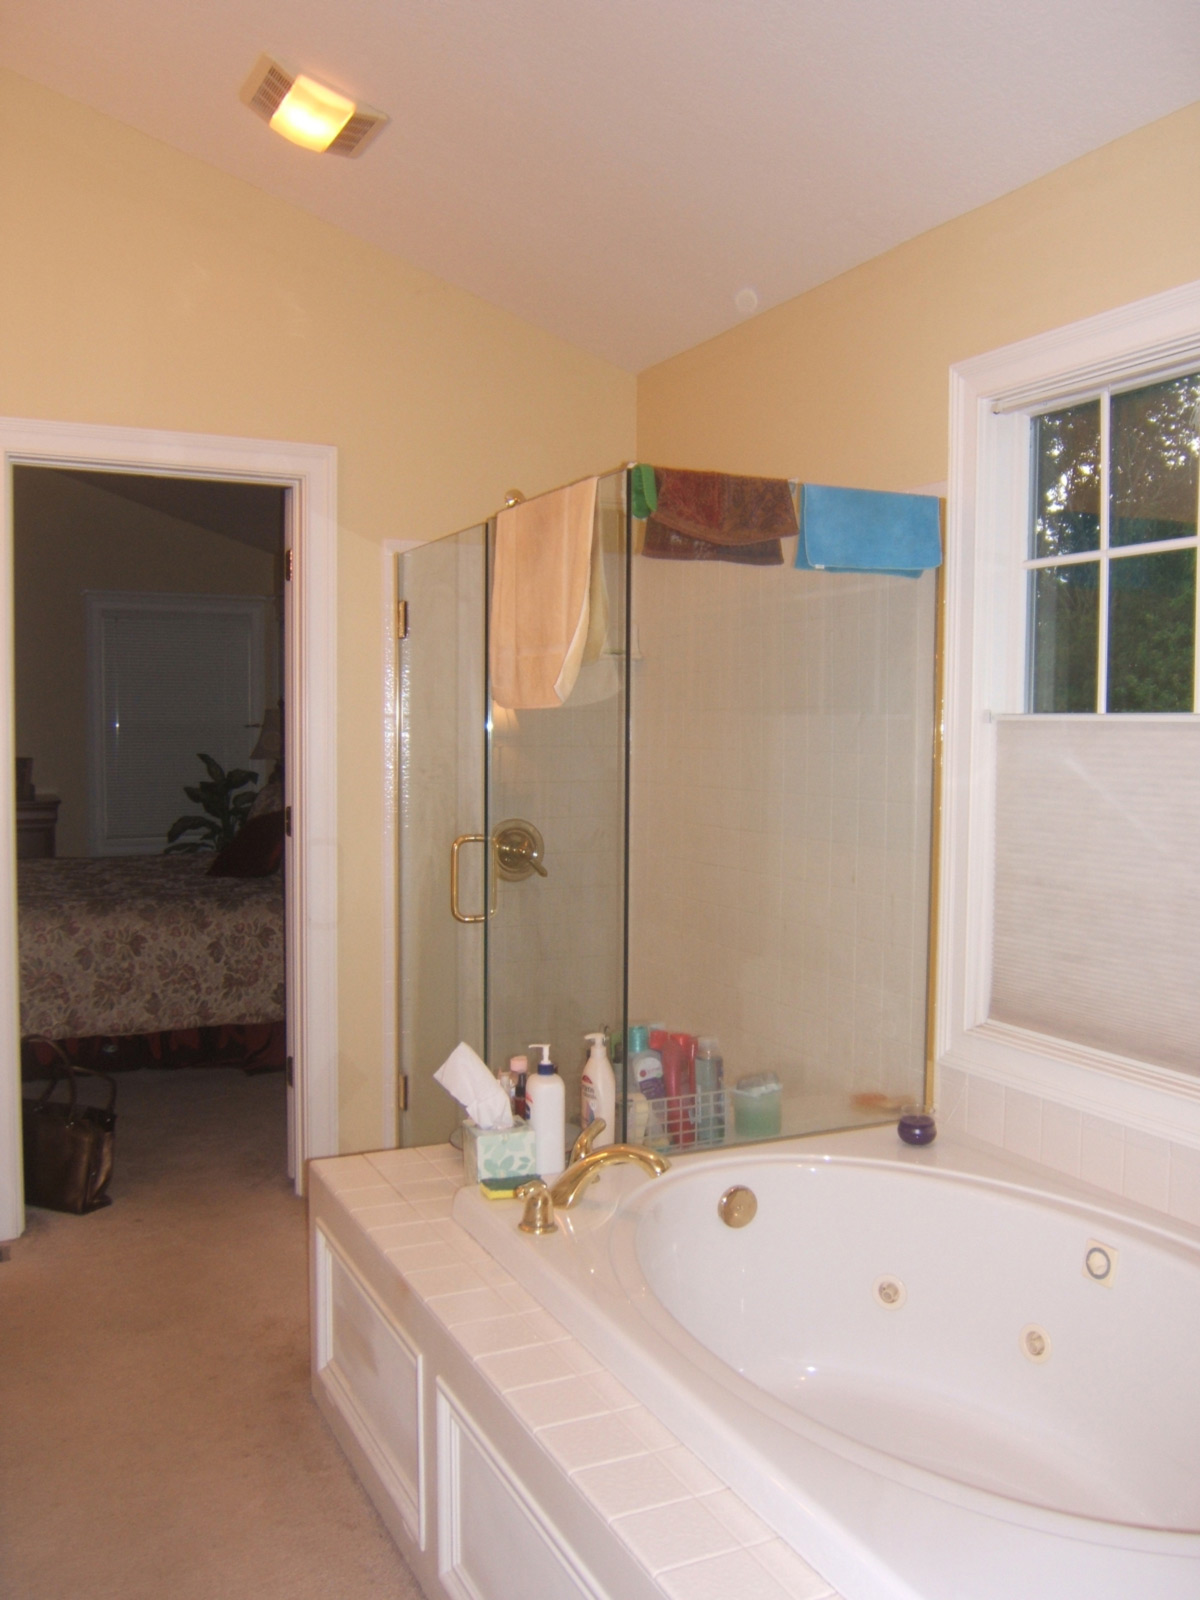 Remodeling Projects Home Decor Ideas Kellie Toole